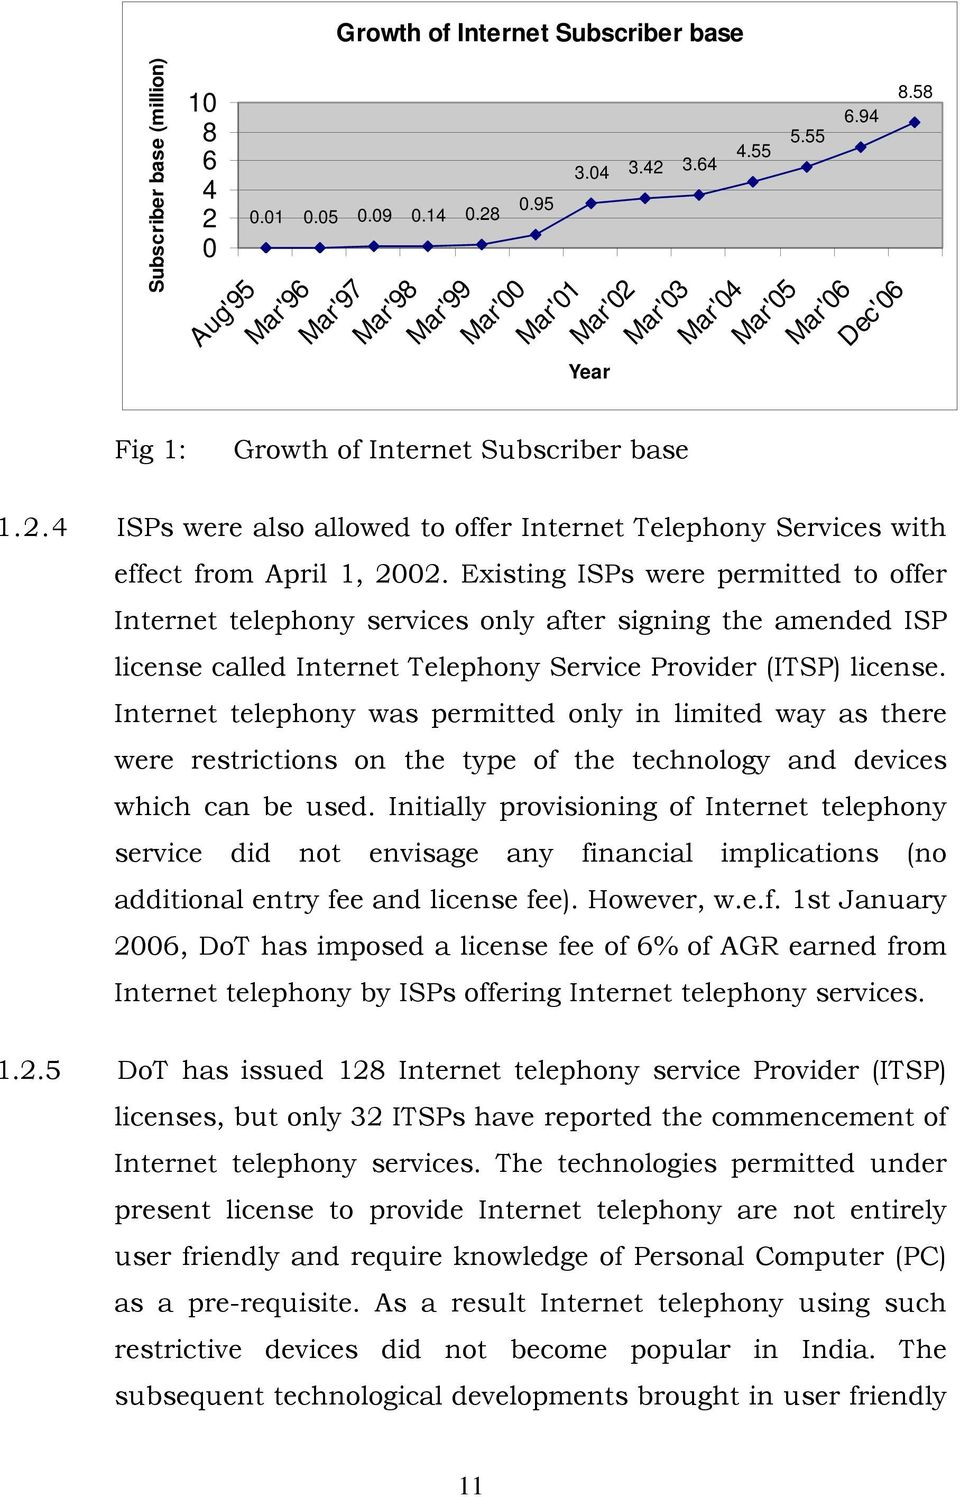 Existing ISPs were permitted to offer Internet telephony services only after signing the amended ISP license called Internet Telephony Service Provider (ITSP) license.